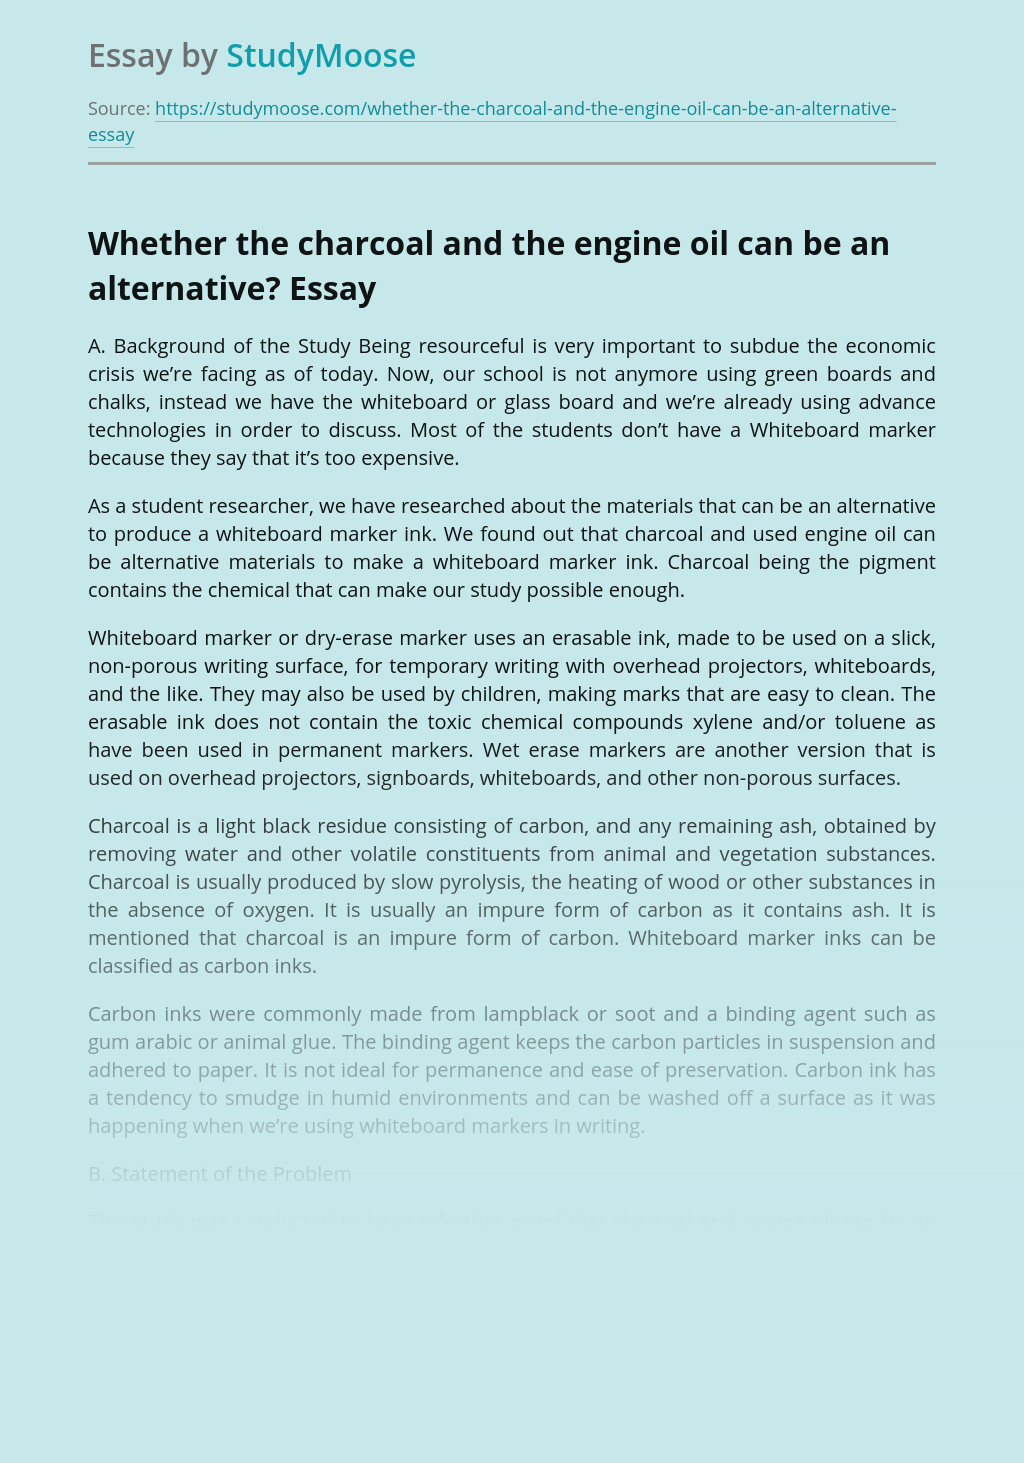 Whether the charcoal and the engine oil can be an alternative?